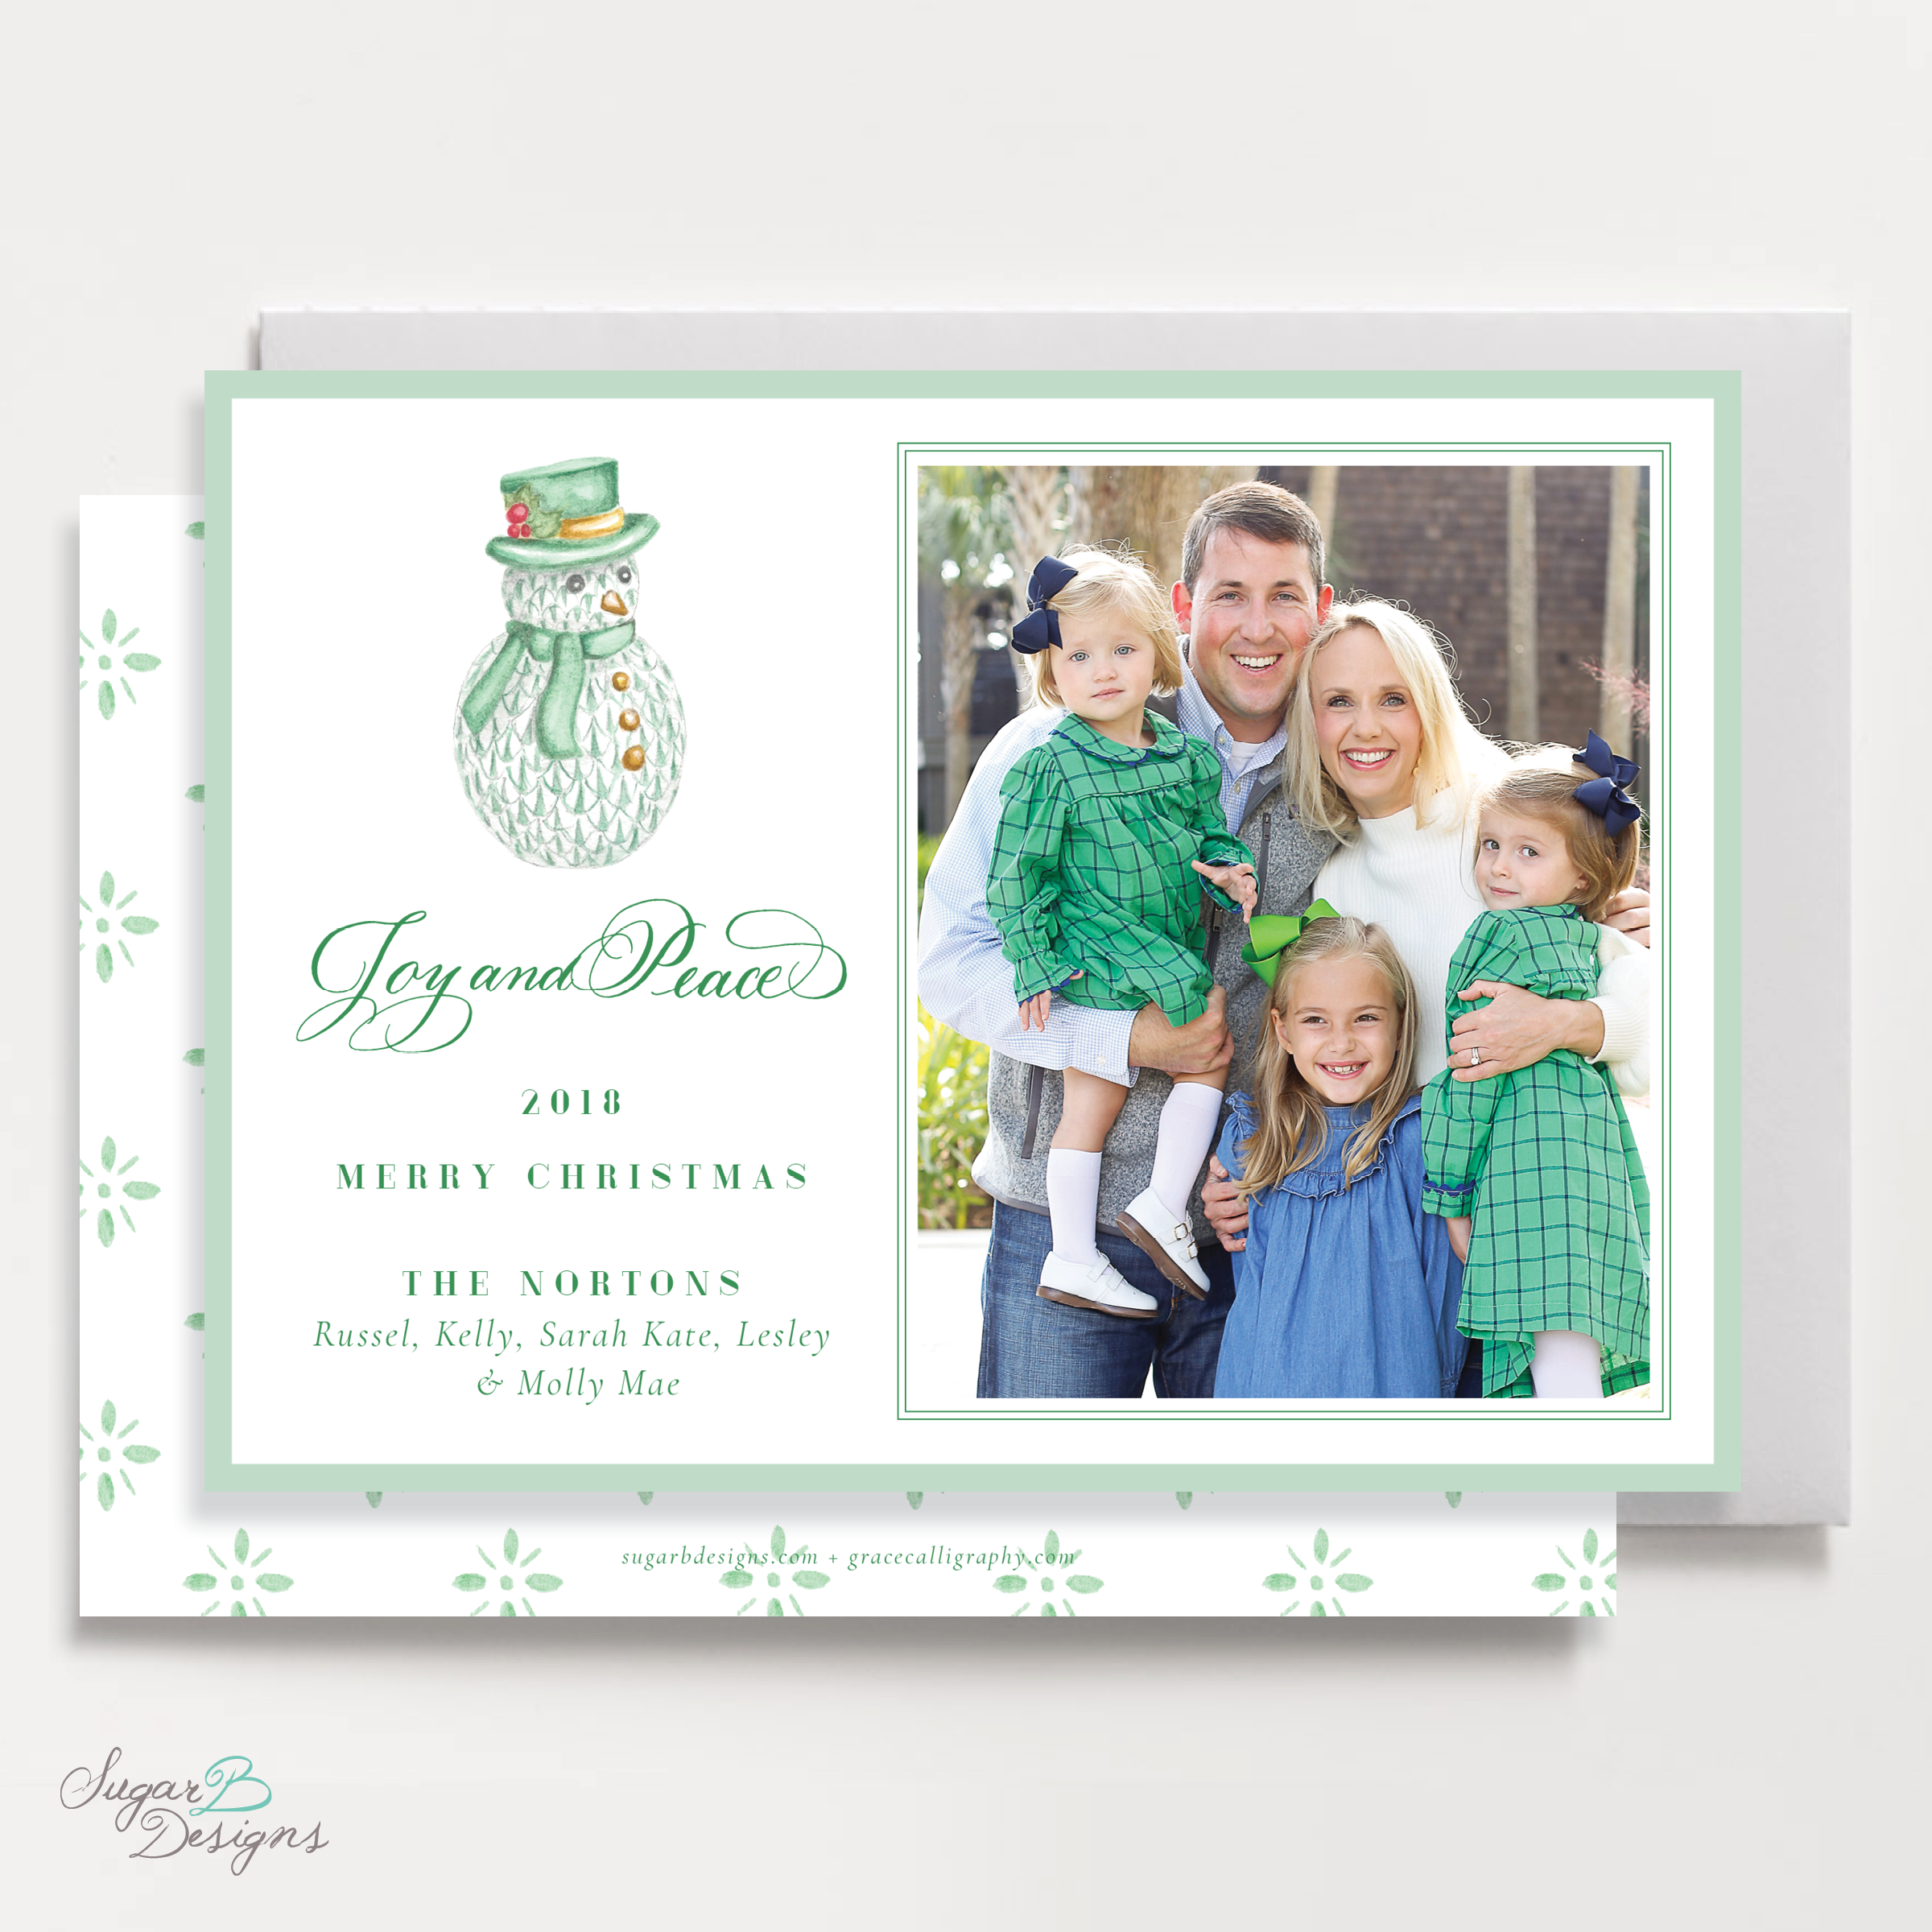 Herend Inspired Green Snowman Landscape Christmas Card front and back by Sugar B Designs.png